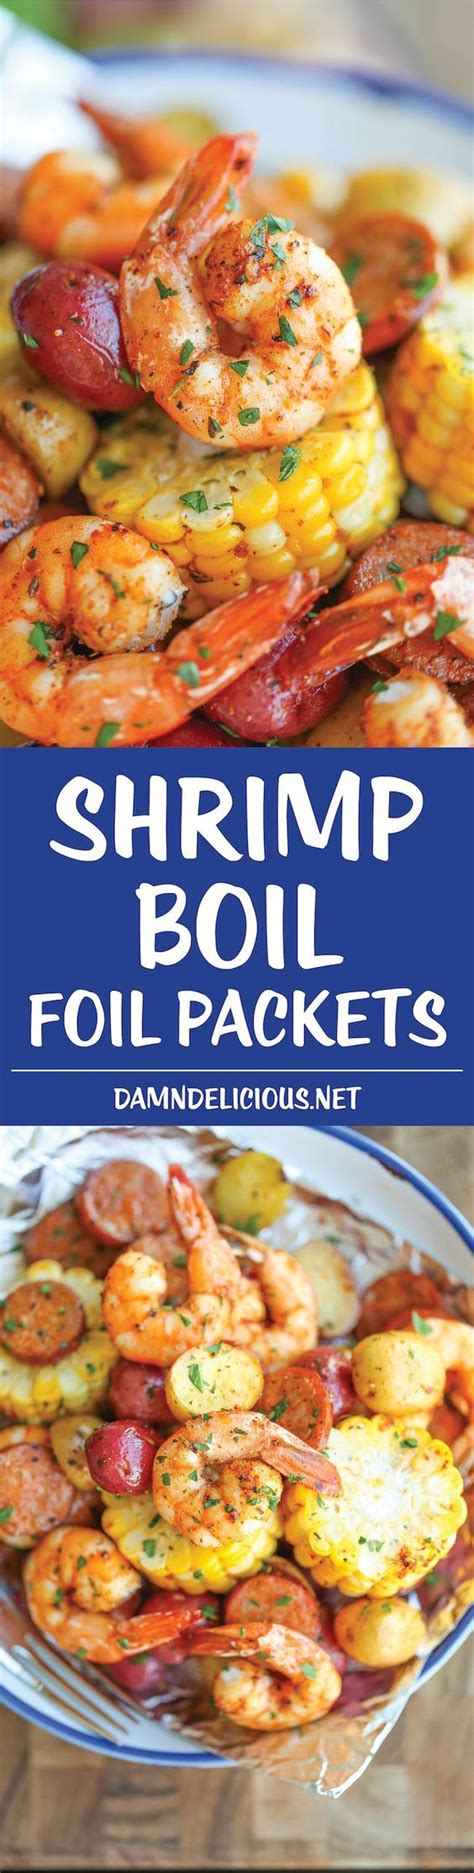 shrimp boil foil packets recipe smoked sausages healthy and sausages